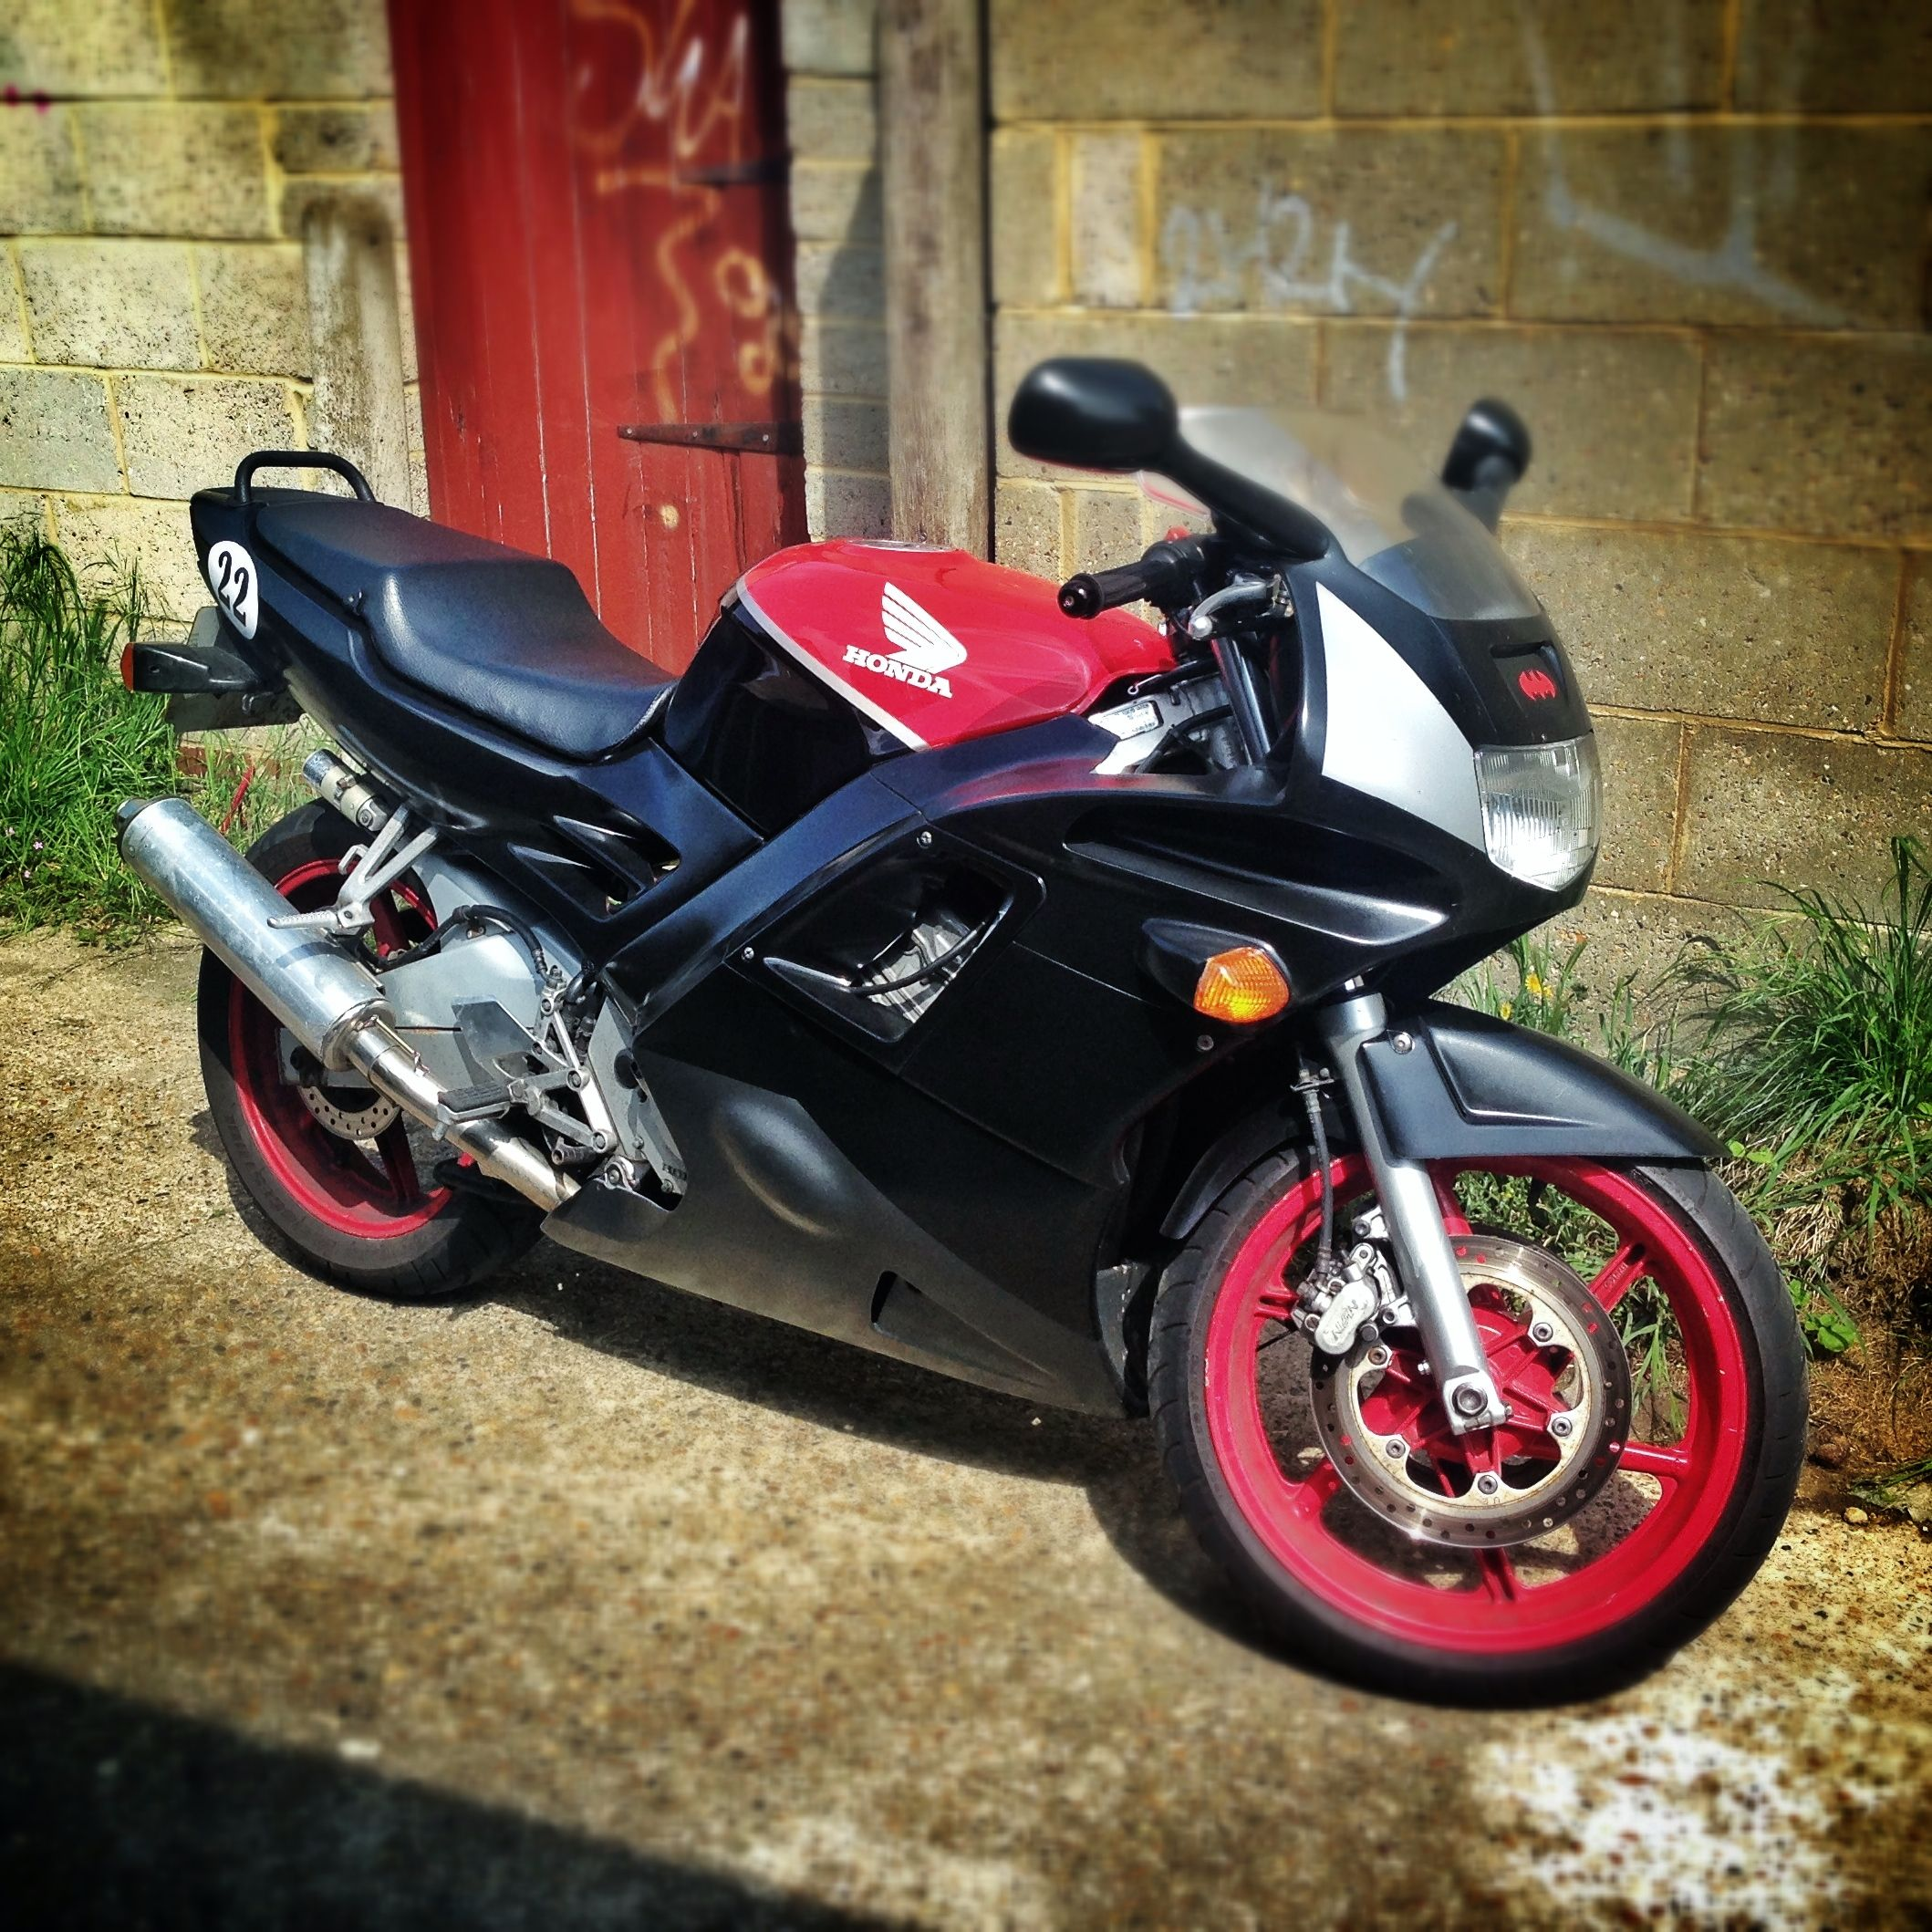 My Cbr600f2 With New Colour Scheme Cbr600f S Cars Motorcycles